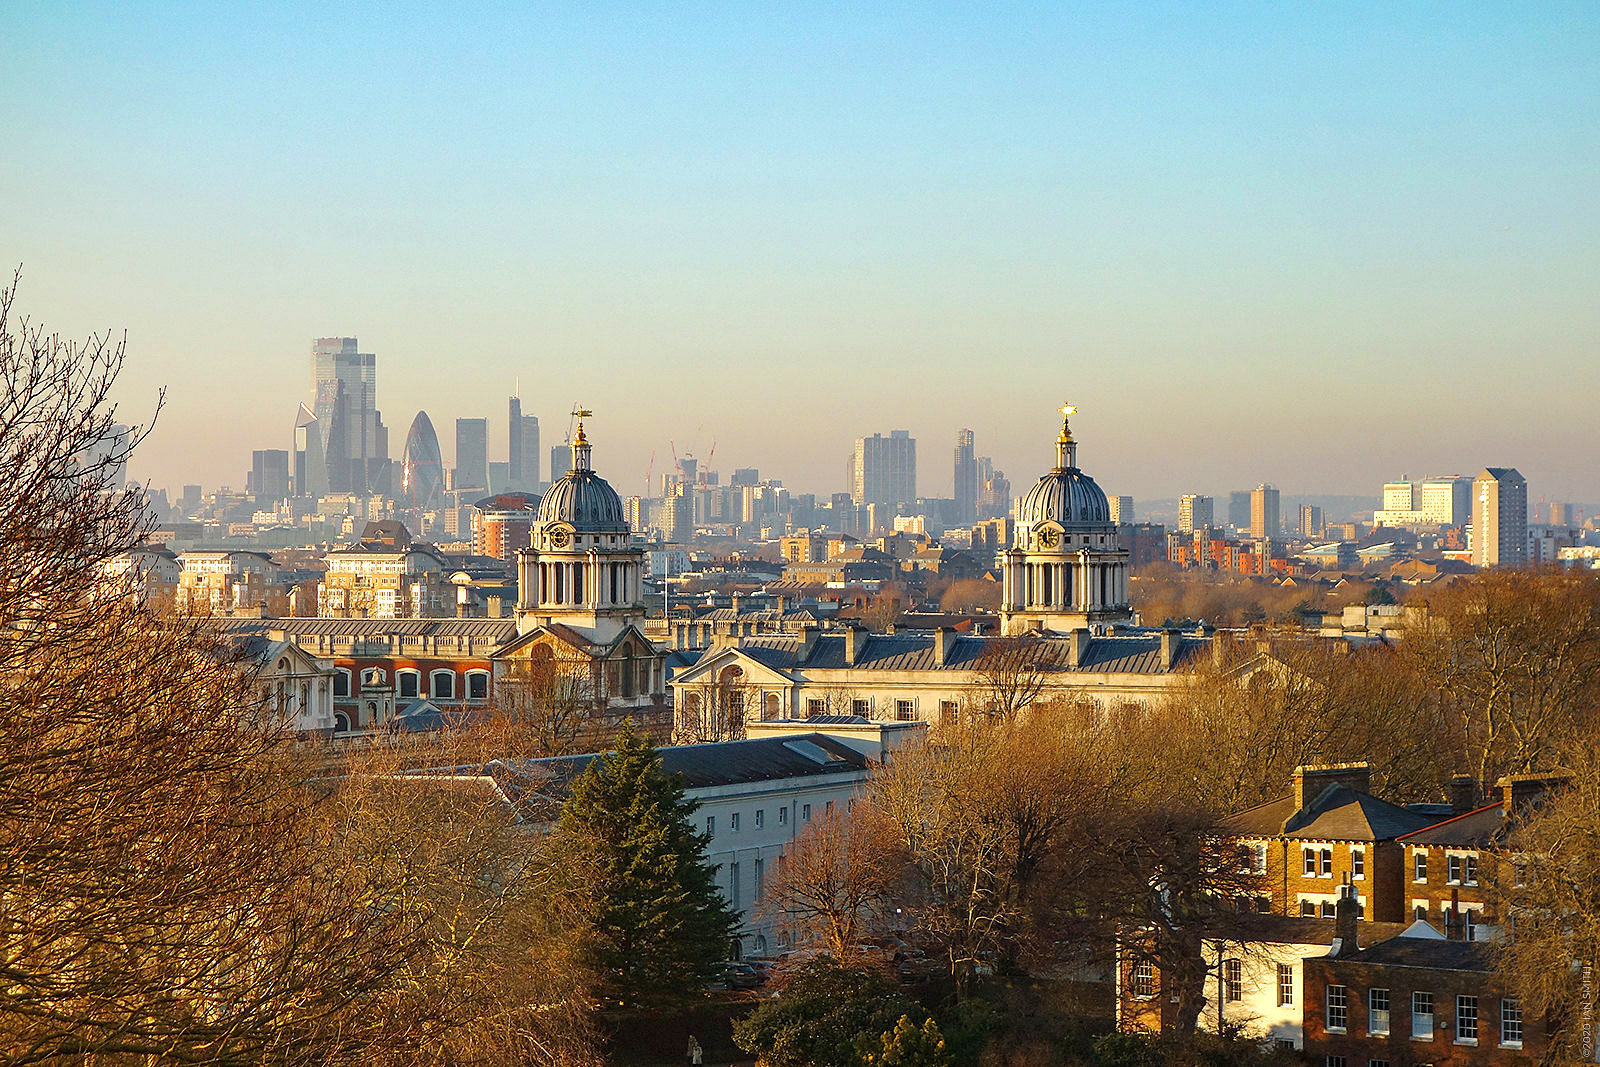 View from One Tree Hill, Greenwich by Ian Smith.jpg